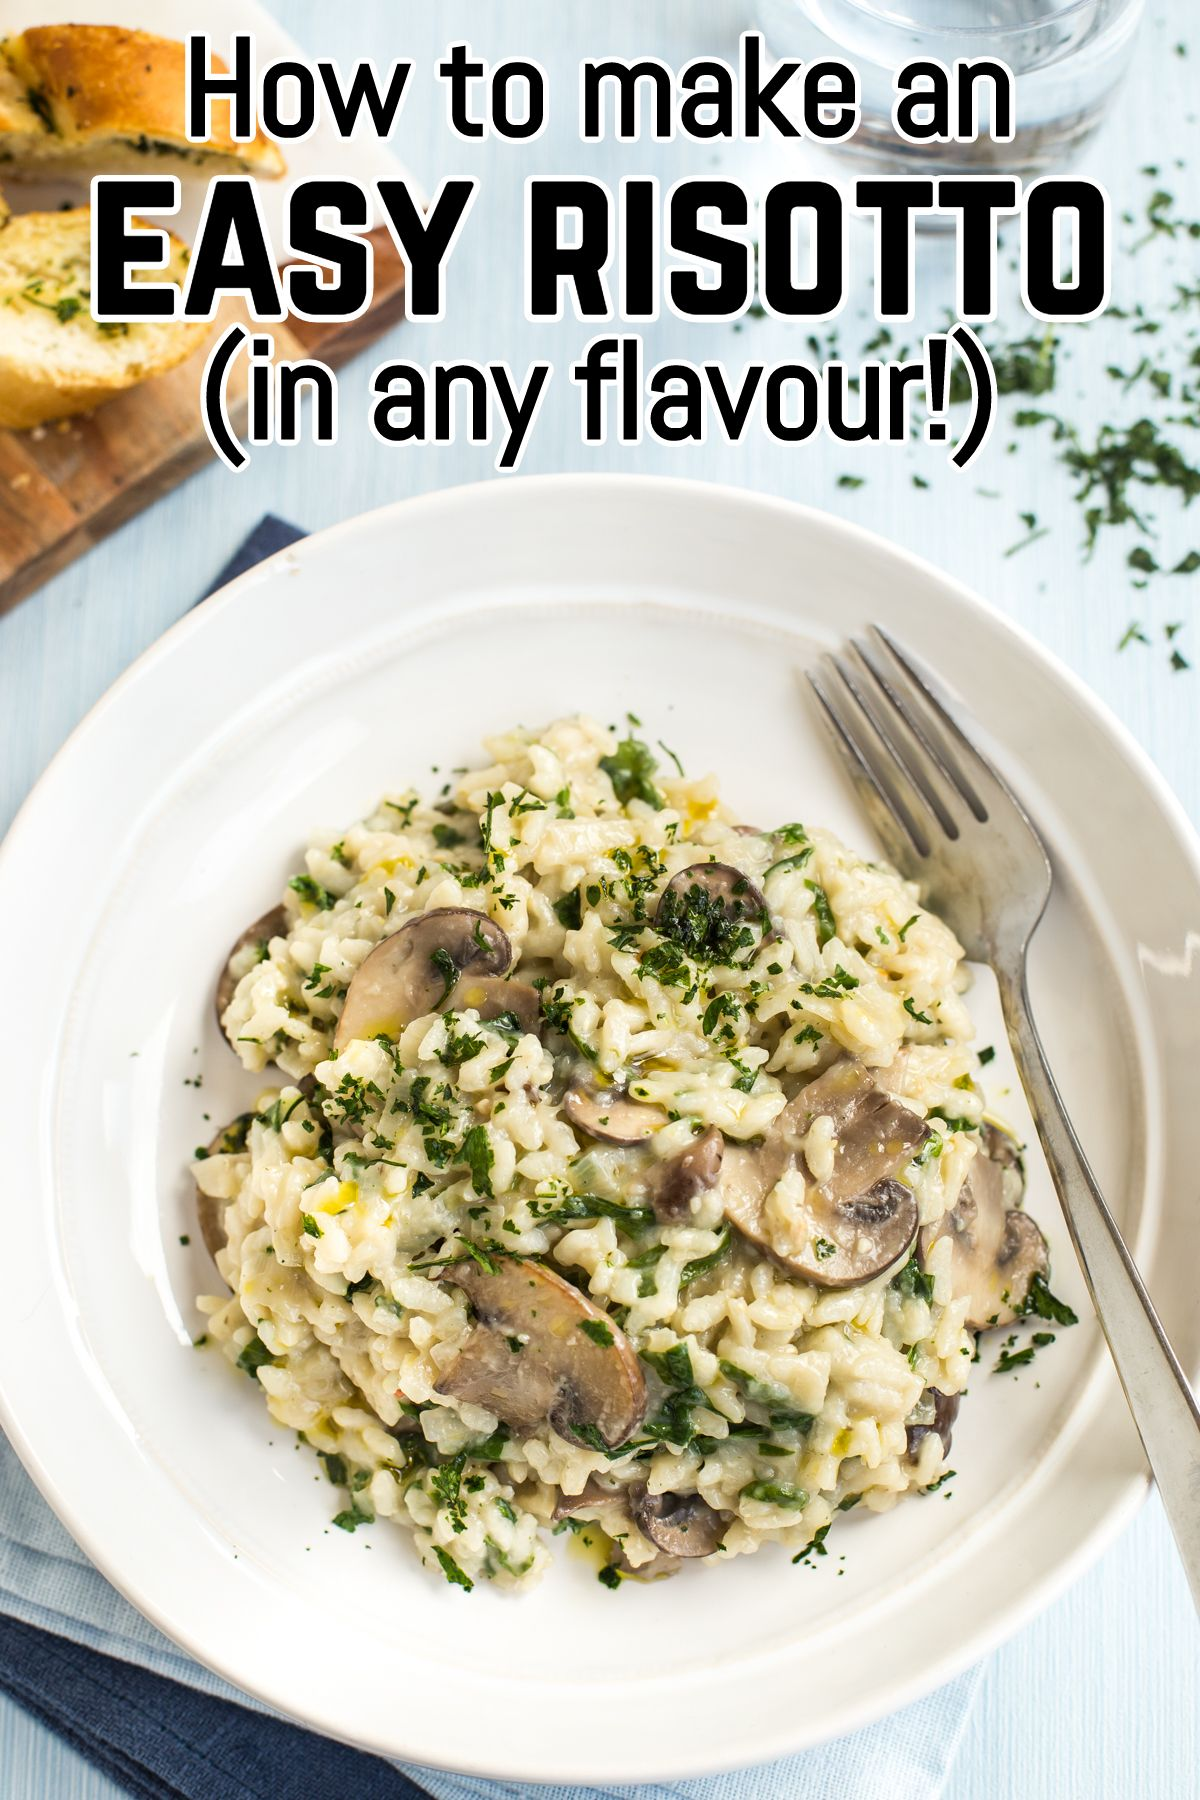 HOW TO MAKE AN EASY RISOTTO FROM SCRATCH MY ULTIMATE GUIDE THESE